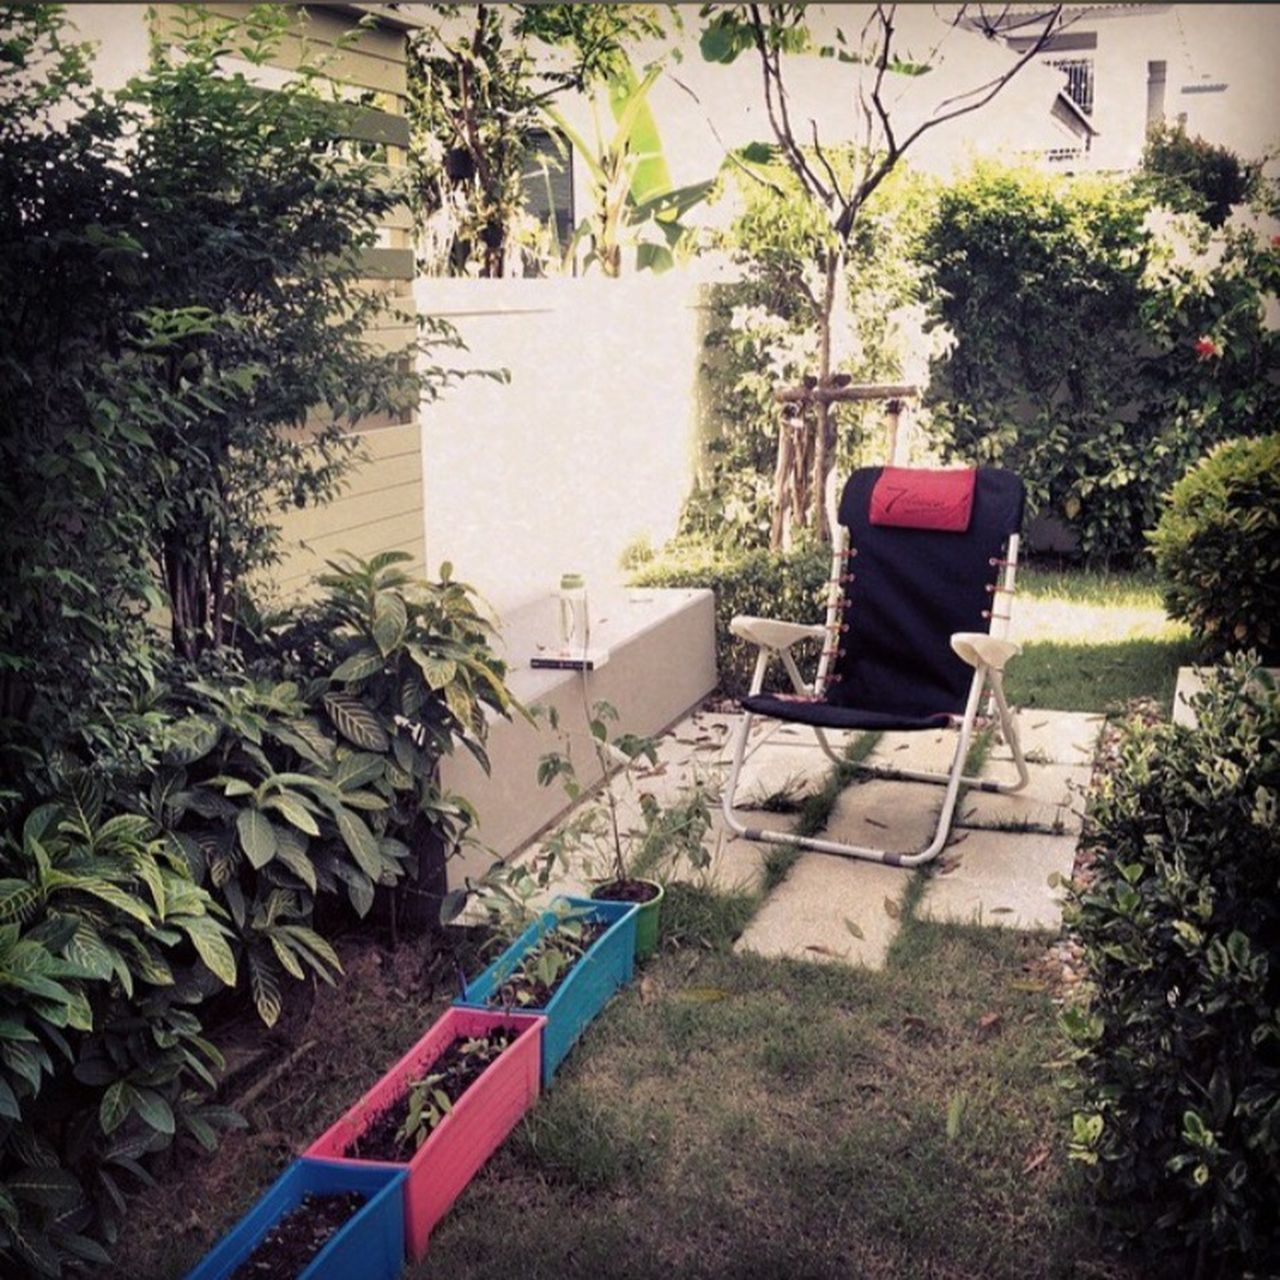 Plant Tree Chair Architecture Built Structure Day Outdoors Building Exterior No People Growth Nature The Great Outdoors - 2017 EyeEm Awards Garden Chair Relaxing Comfy  Corner Outside In The Garden Mood Of The Day